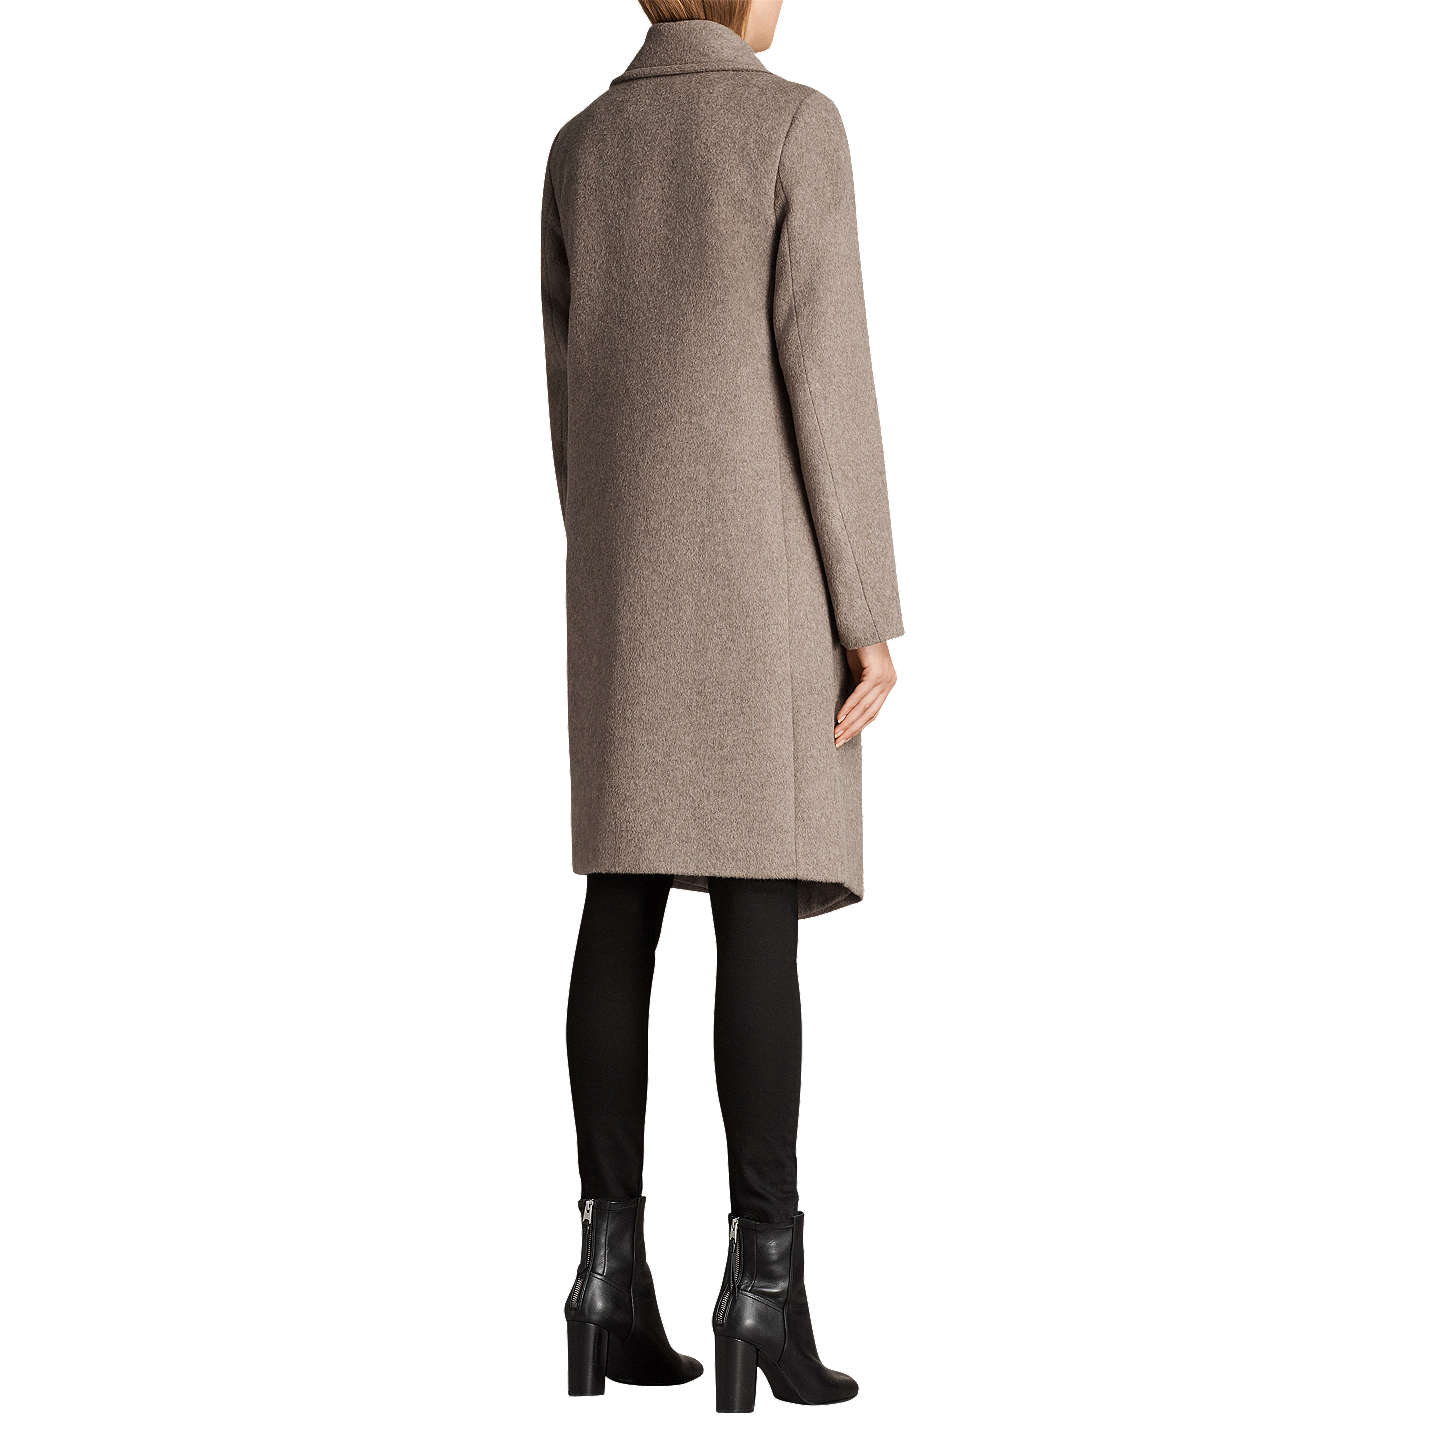 BuyAllSaints Ellis Tia Coat, Oat Brown, 6 Online at johnlewis.com